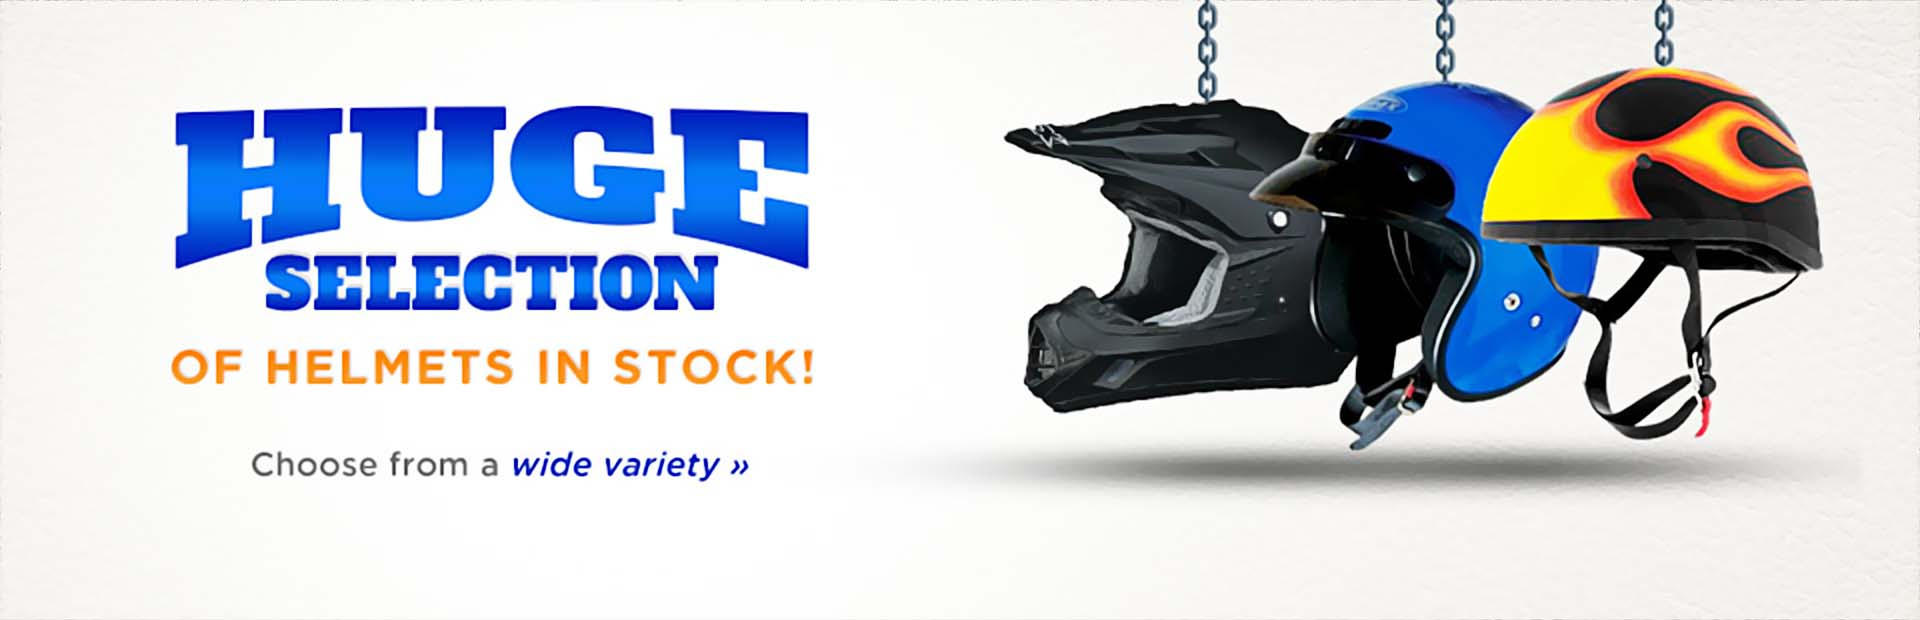 We have a huge selection of helmets in stock!